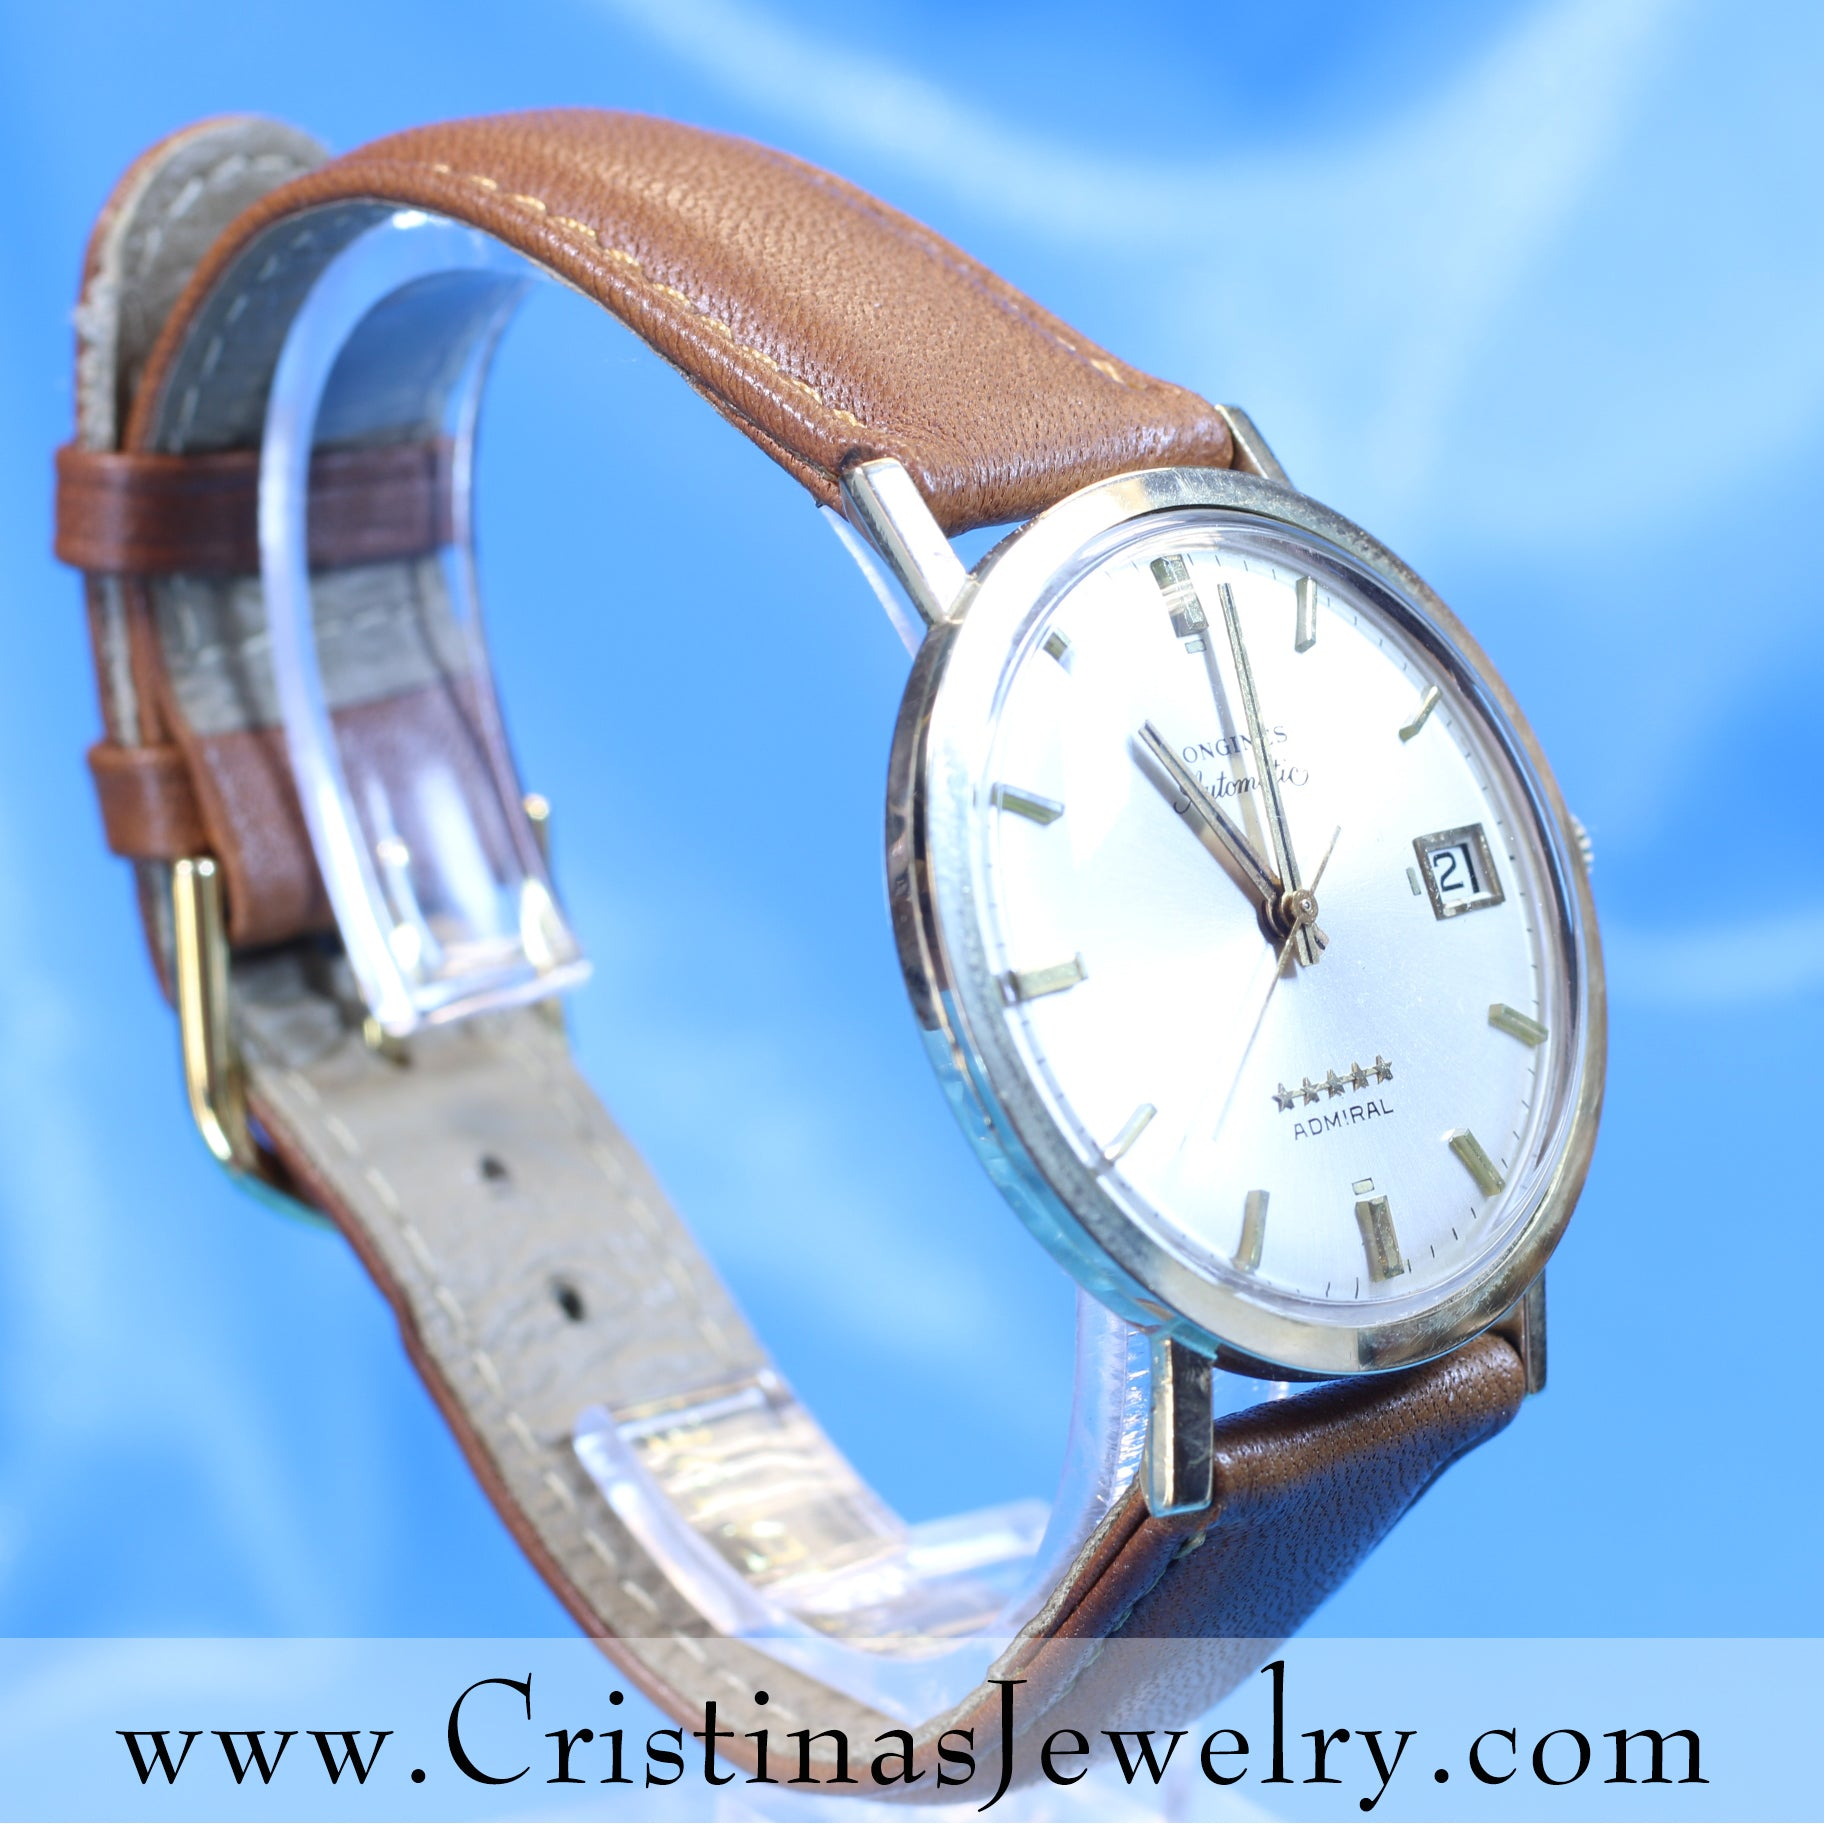 Vintage Longines 5 Star Admiral Automatic Precision Luxury Timepiece From 1972